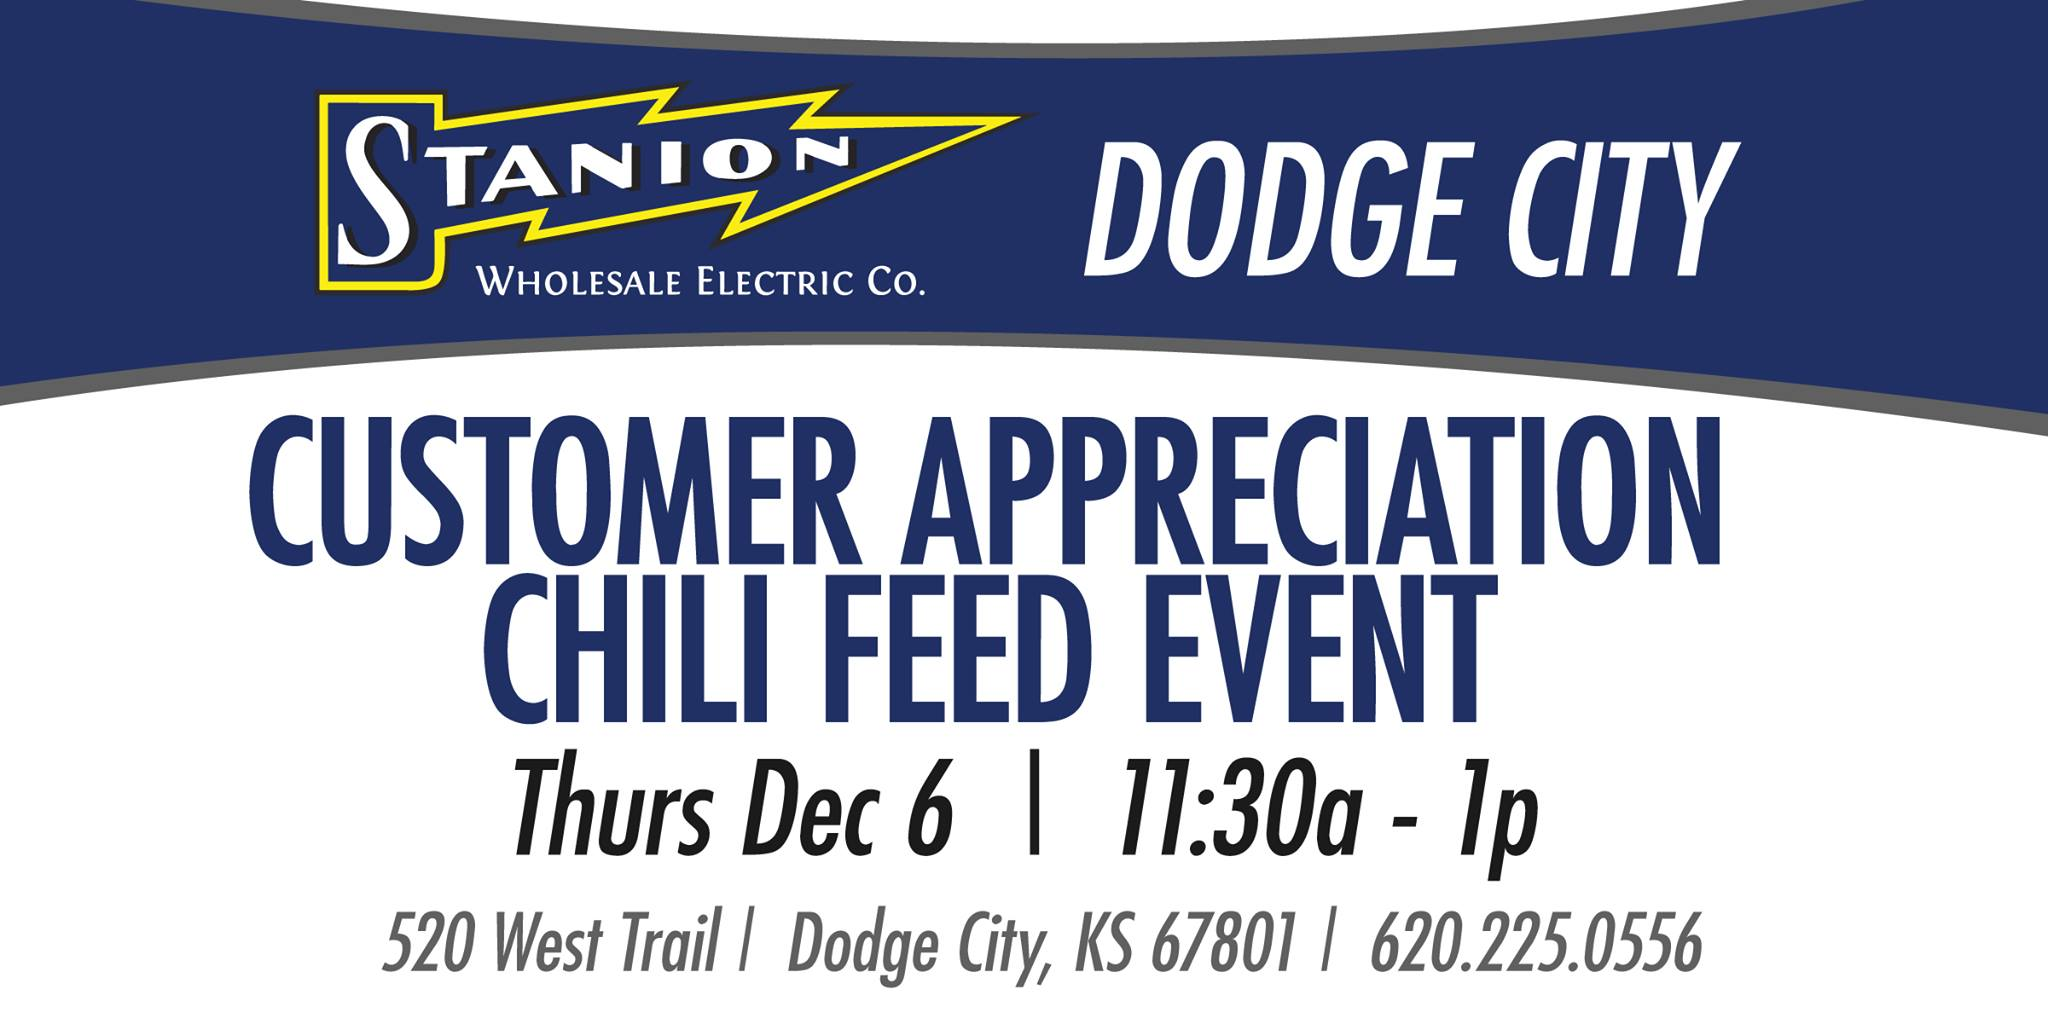 Customer Appreciation Chili Feed Event- Stanion Wholsale Electric Co.